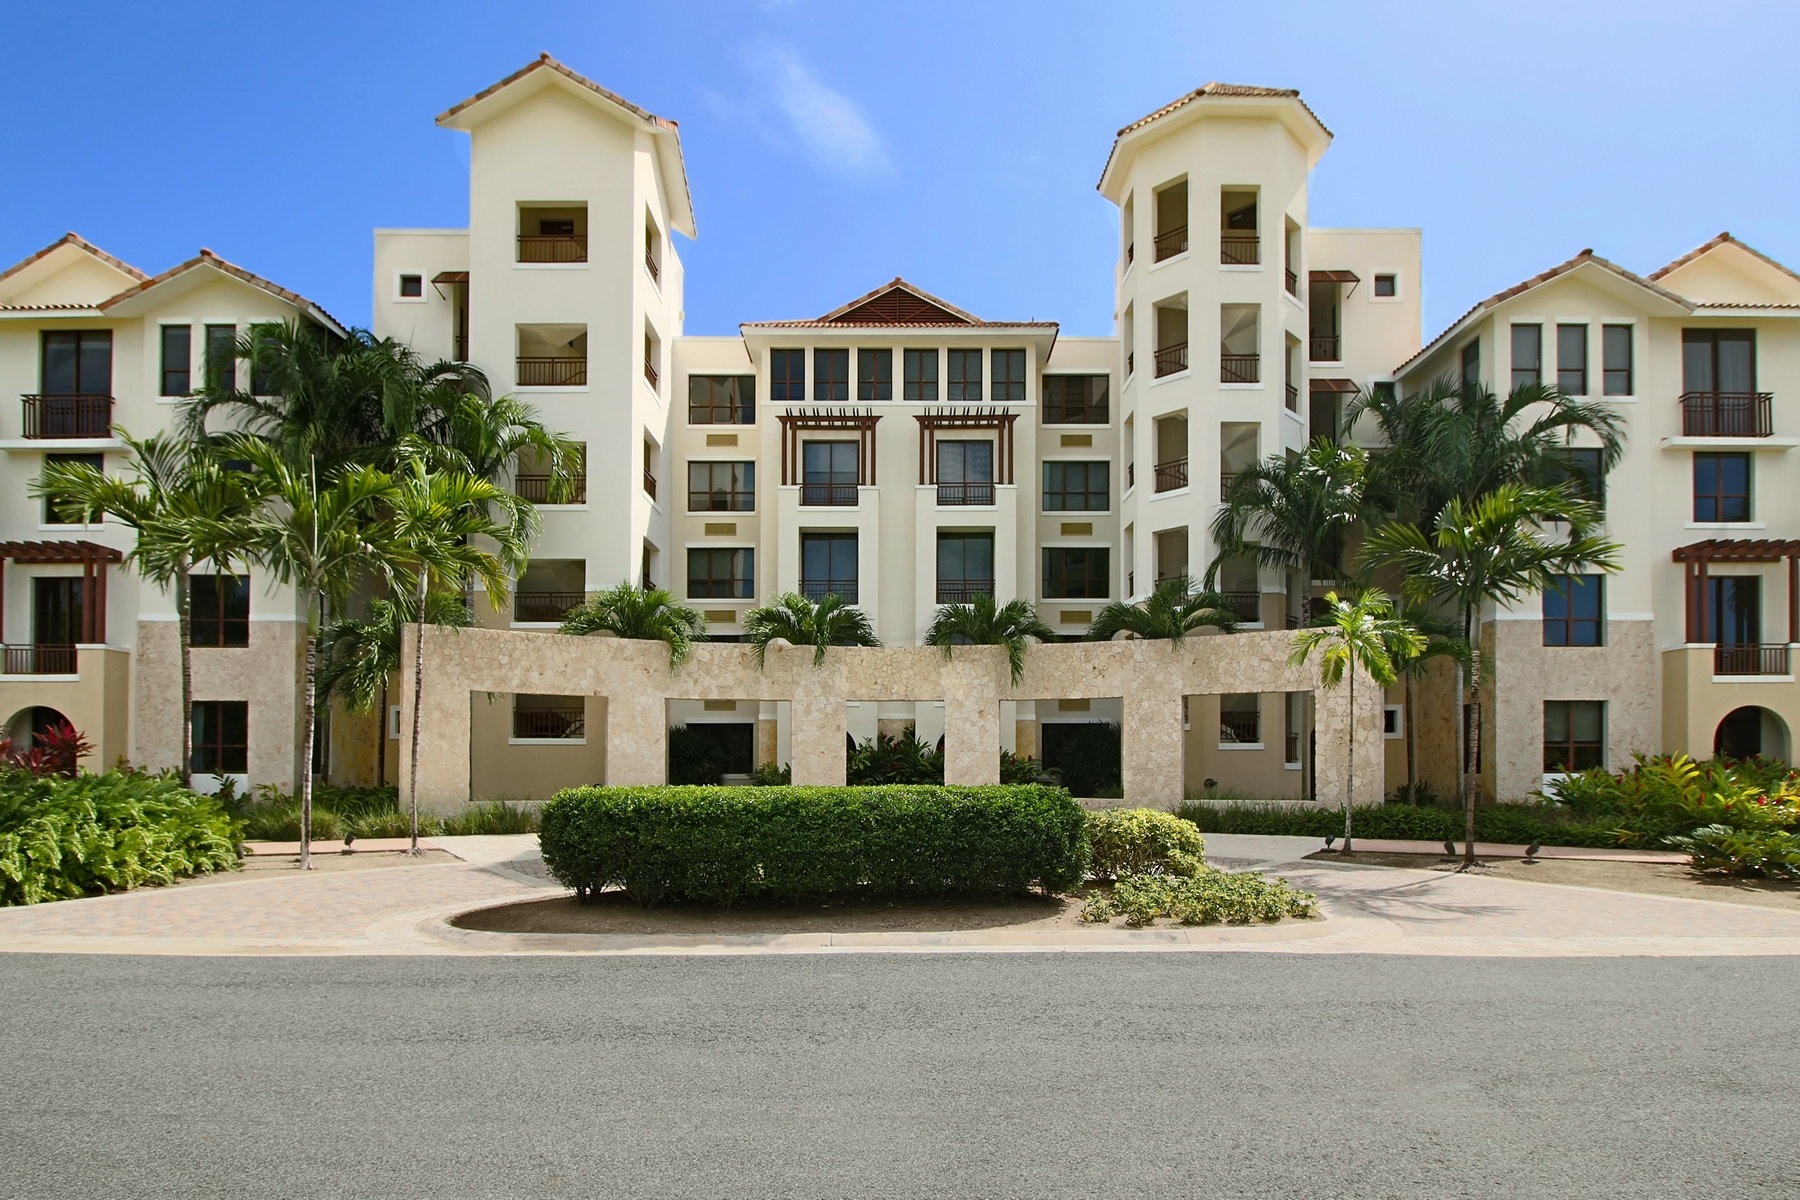 Additional photo for property listing at Residence 144 at 238 Candelero Drive 238 Candelero Drive, Apt 144 Solarea Beach Resort and Yacht Club Palmas Del Mar, Puerto Rico 00791 Puerto Rico